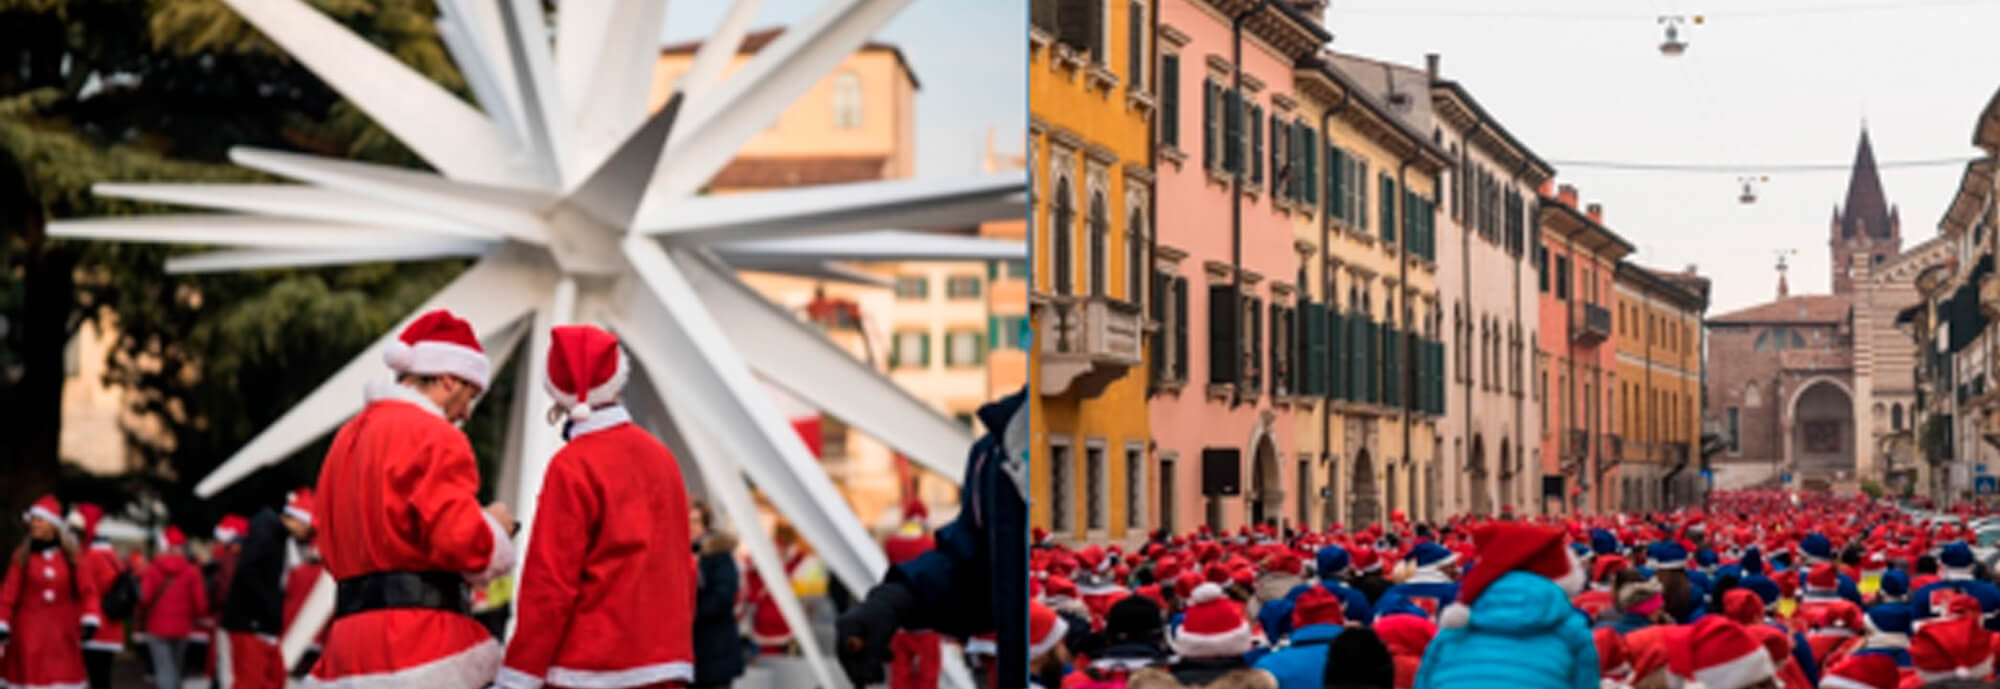 Verona a fairy tale Christmas atmosphere combined with a special food wine experience